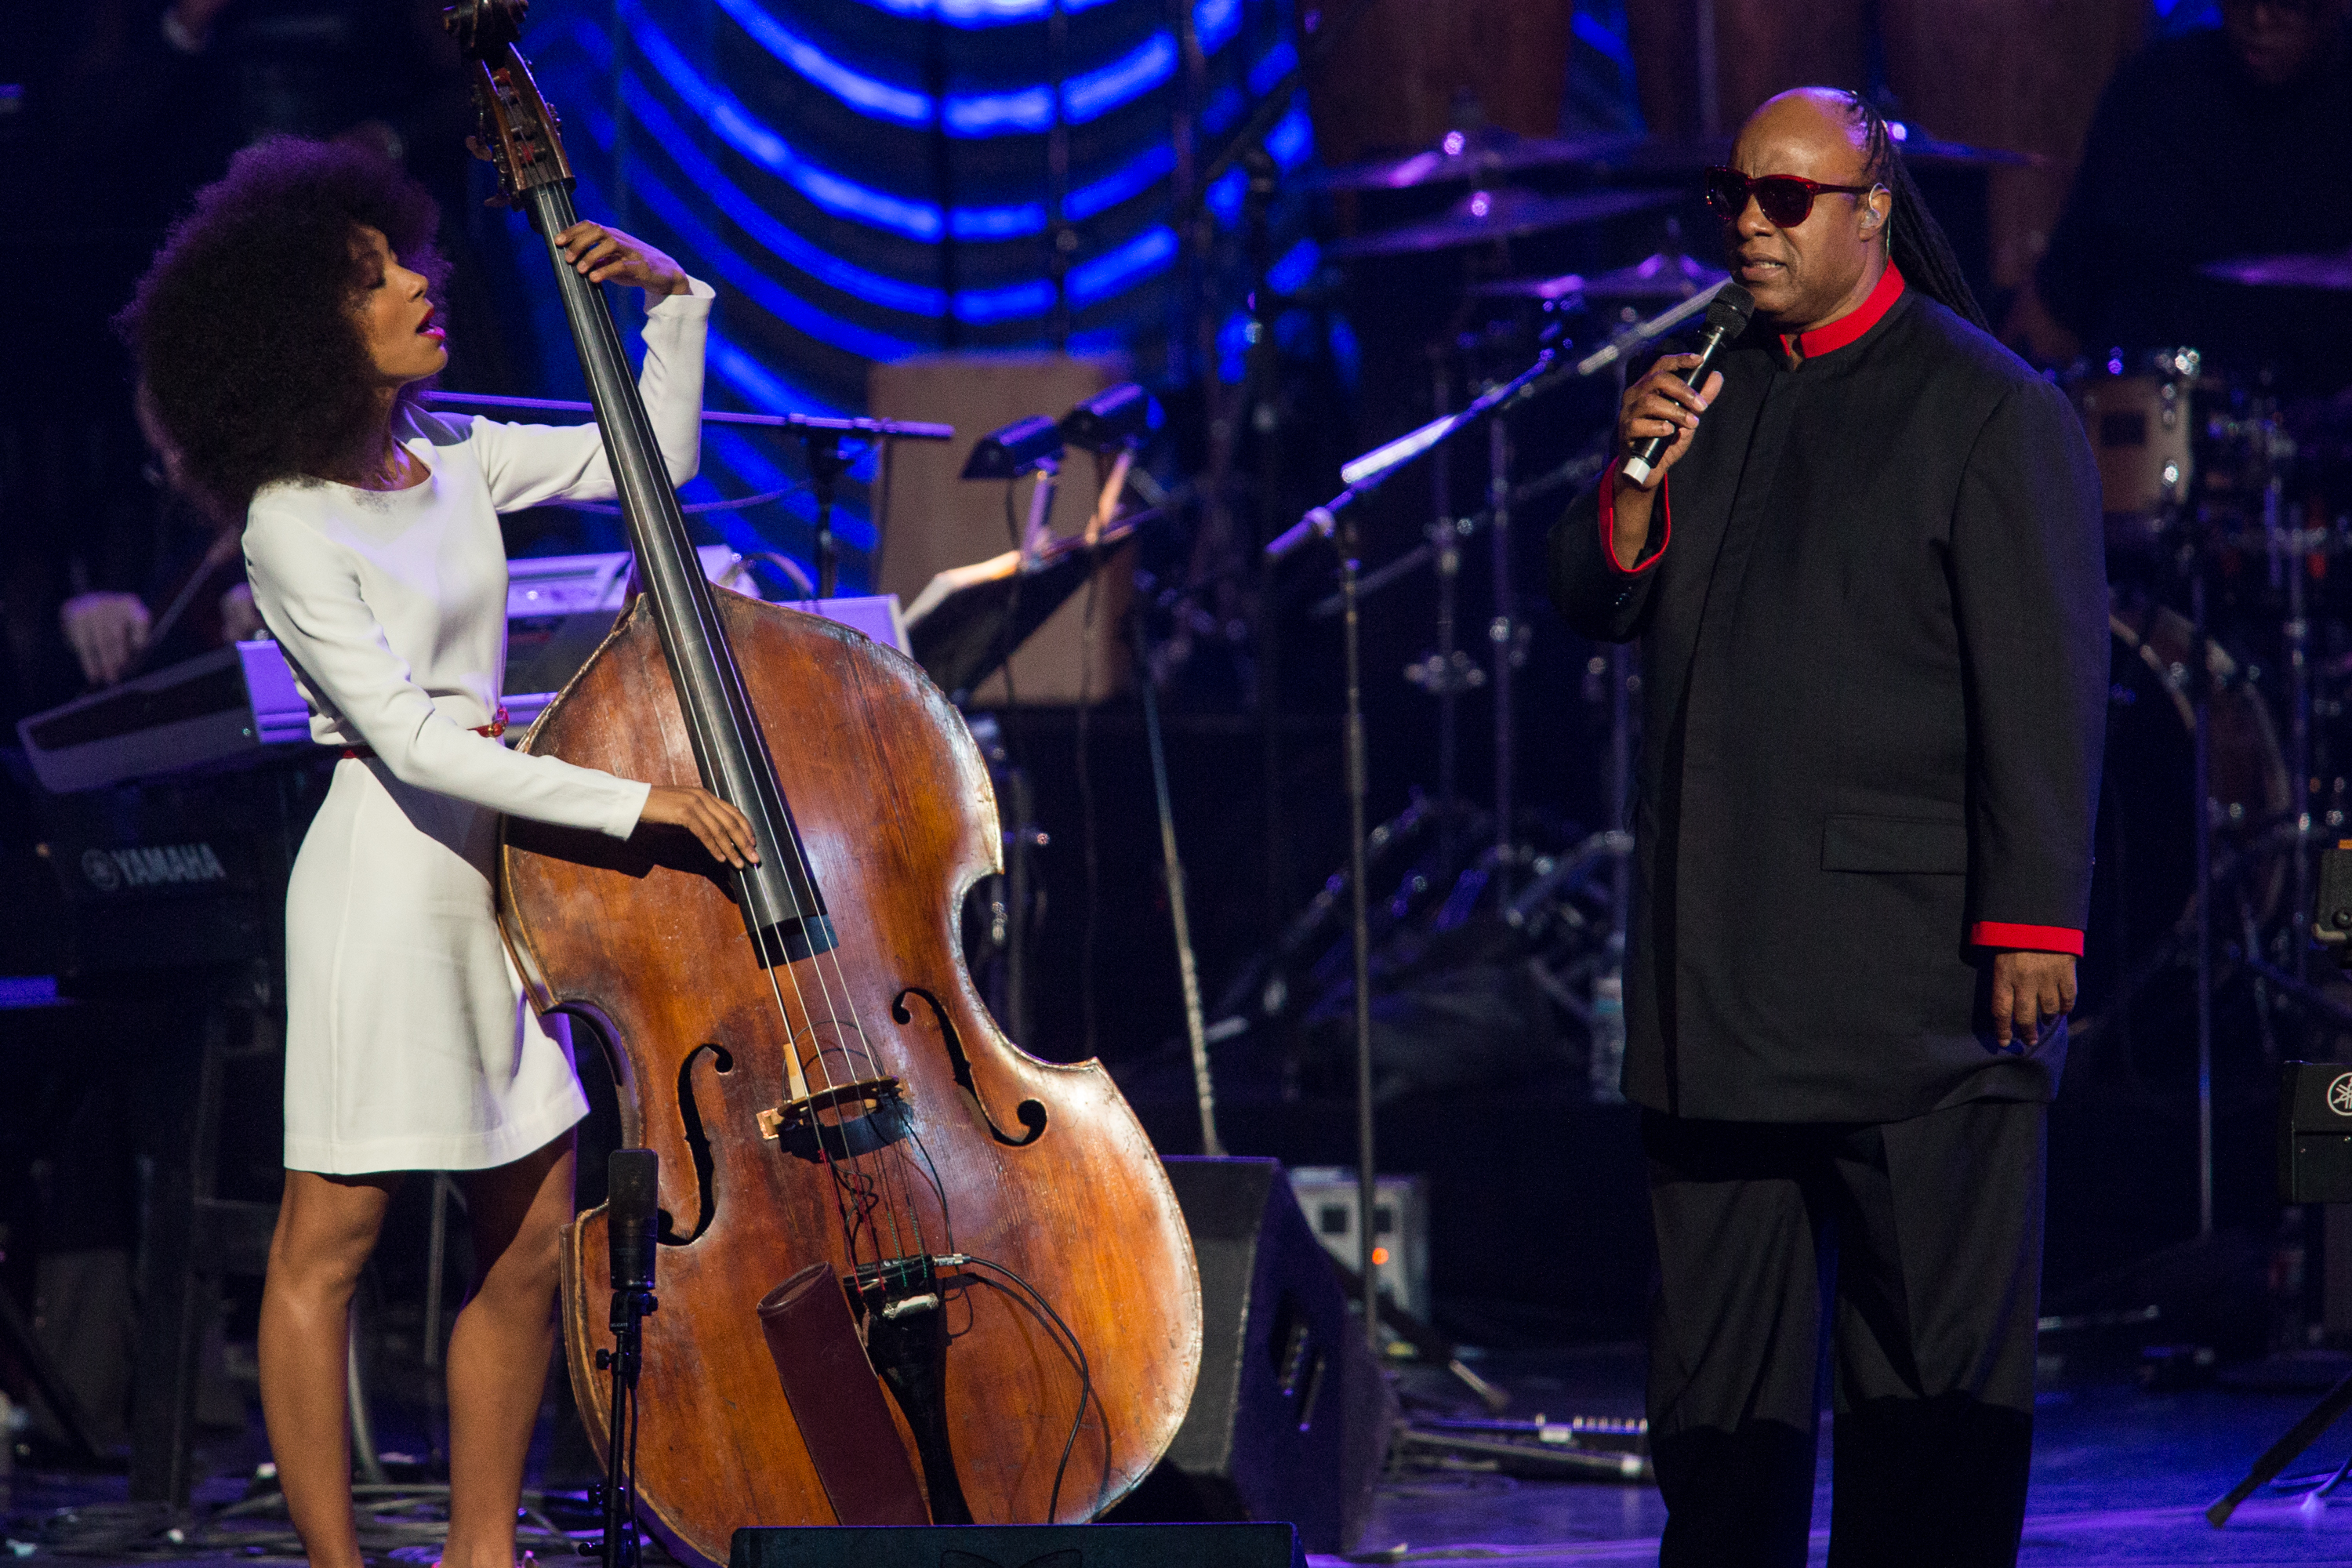 Esperanza Spalding joins Stevie Wonder in LA - The Boston Globe